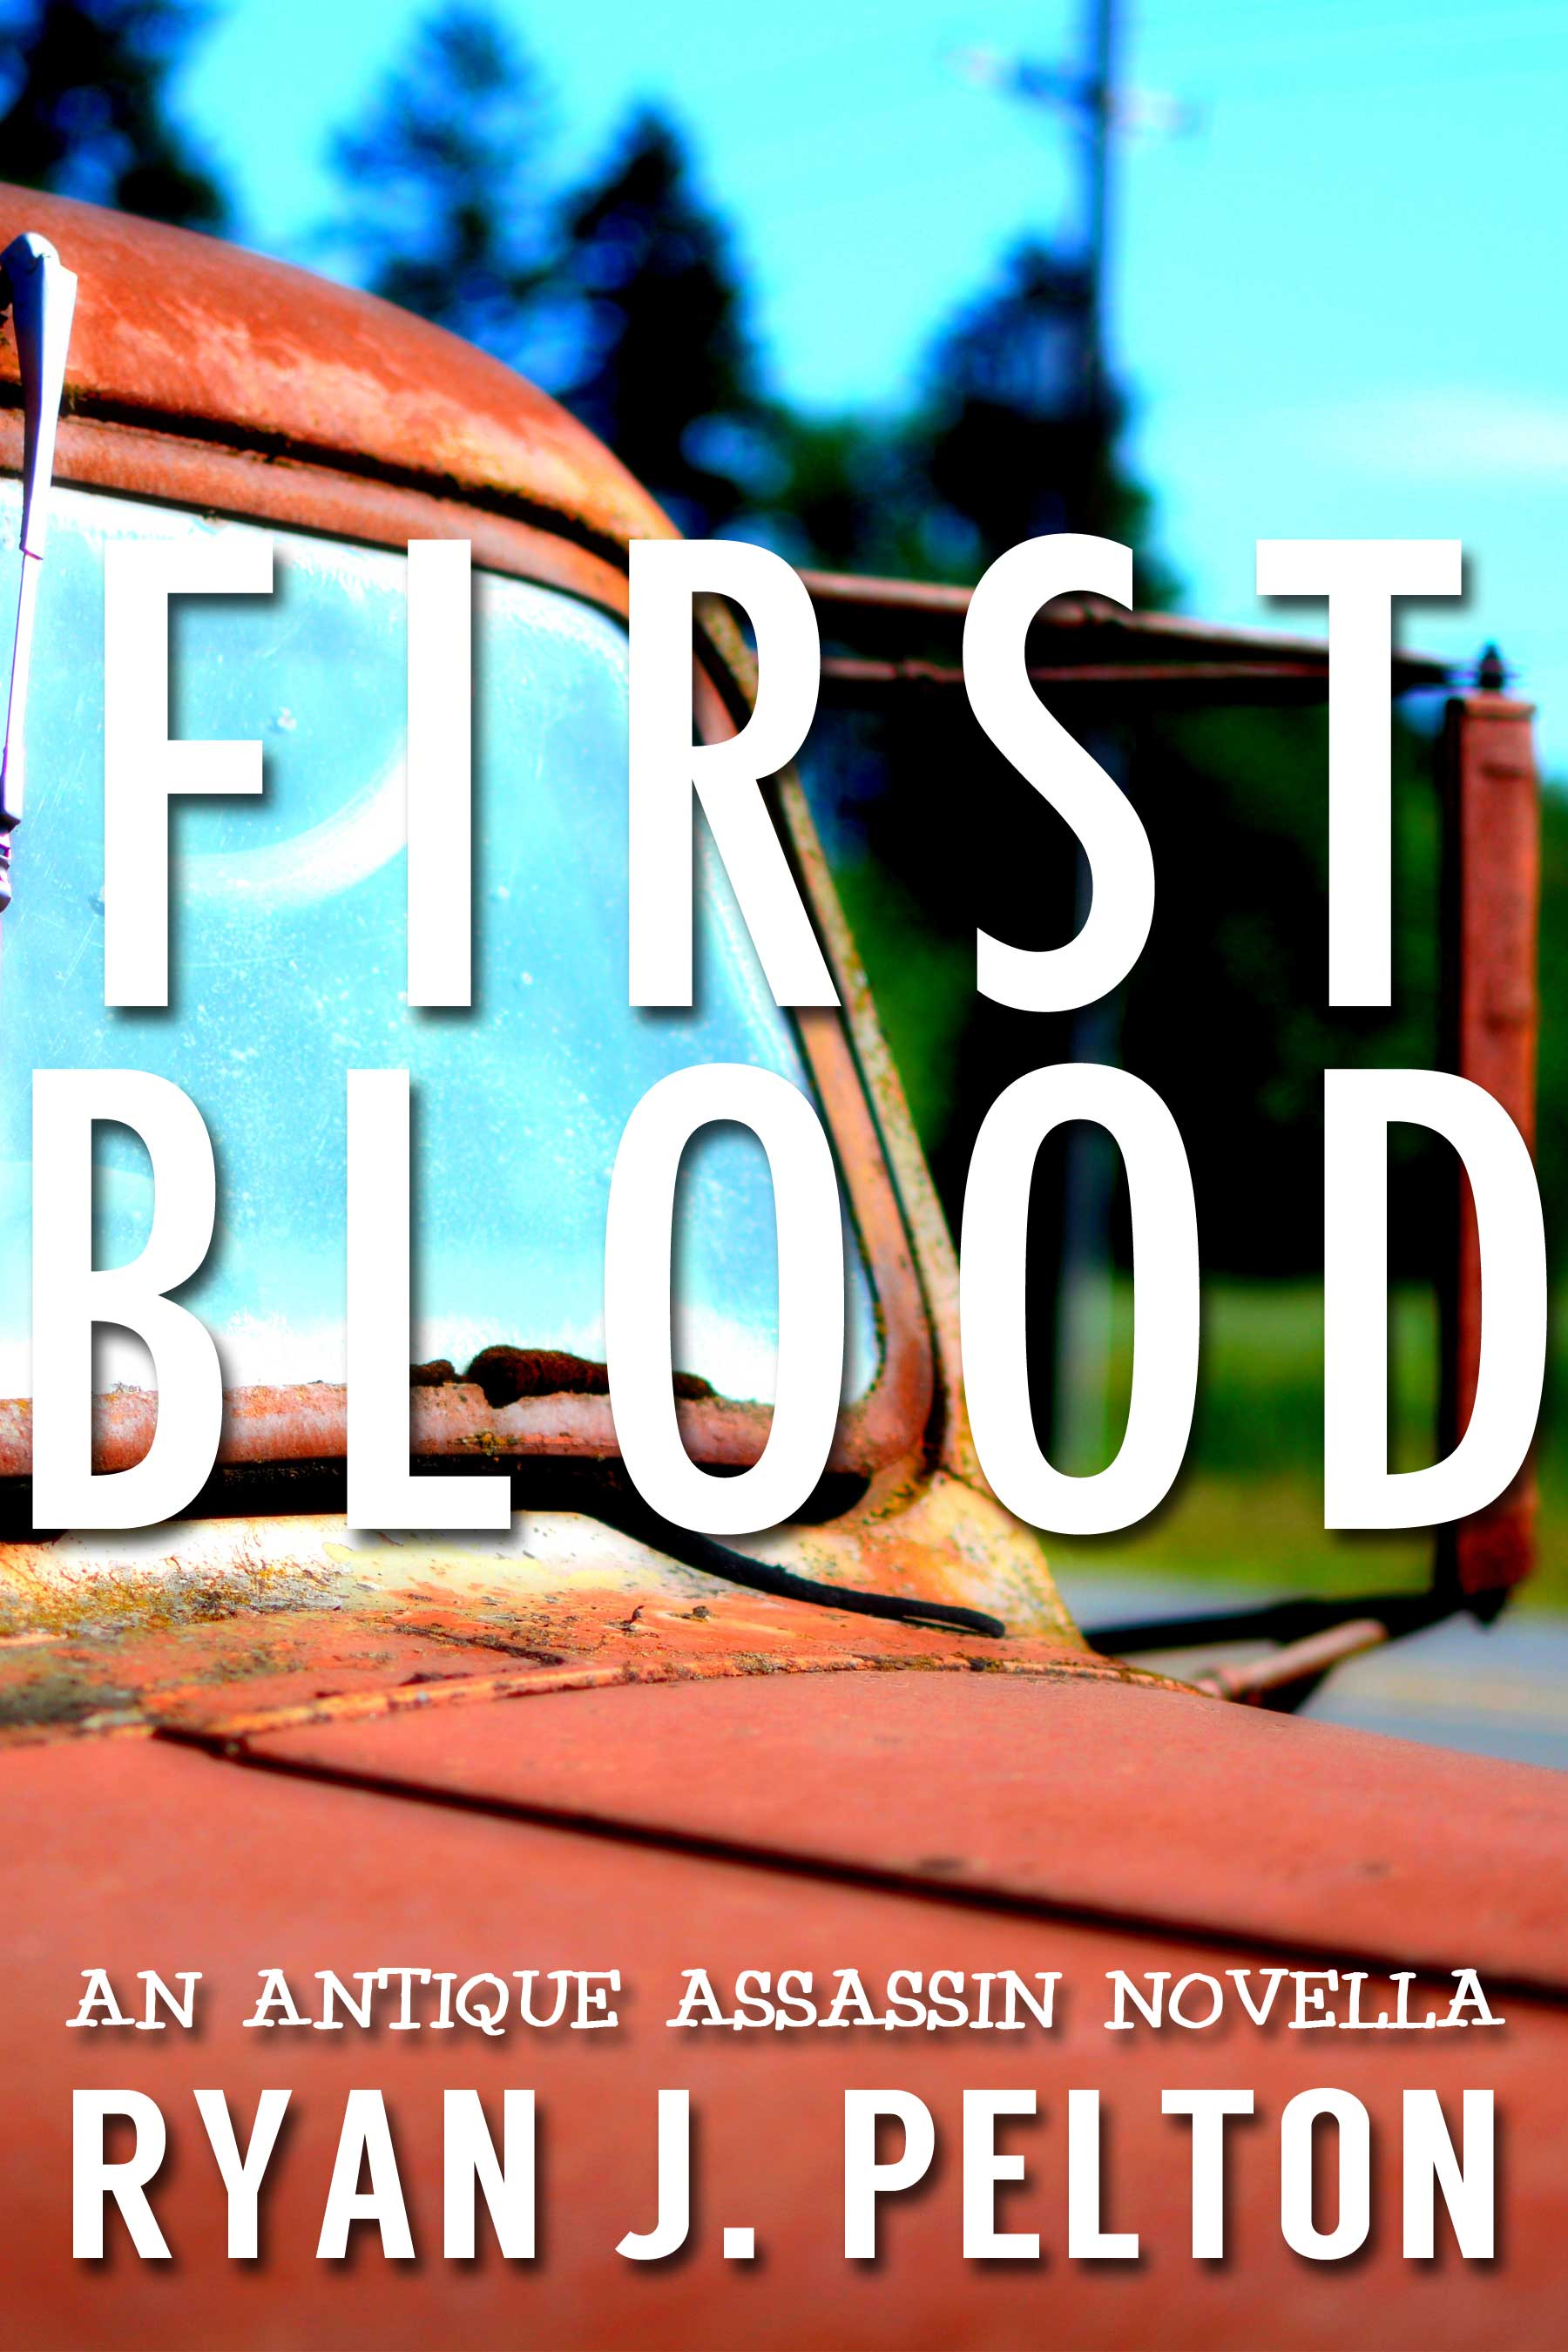 FirstBloodAABook4KindleCover.jpg